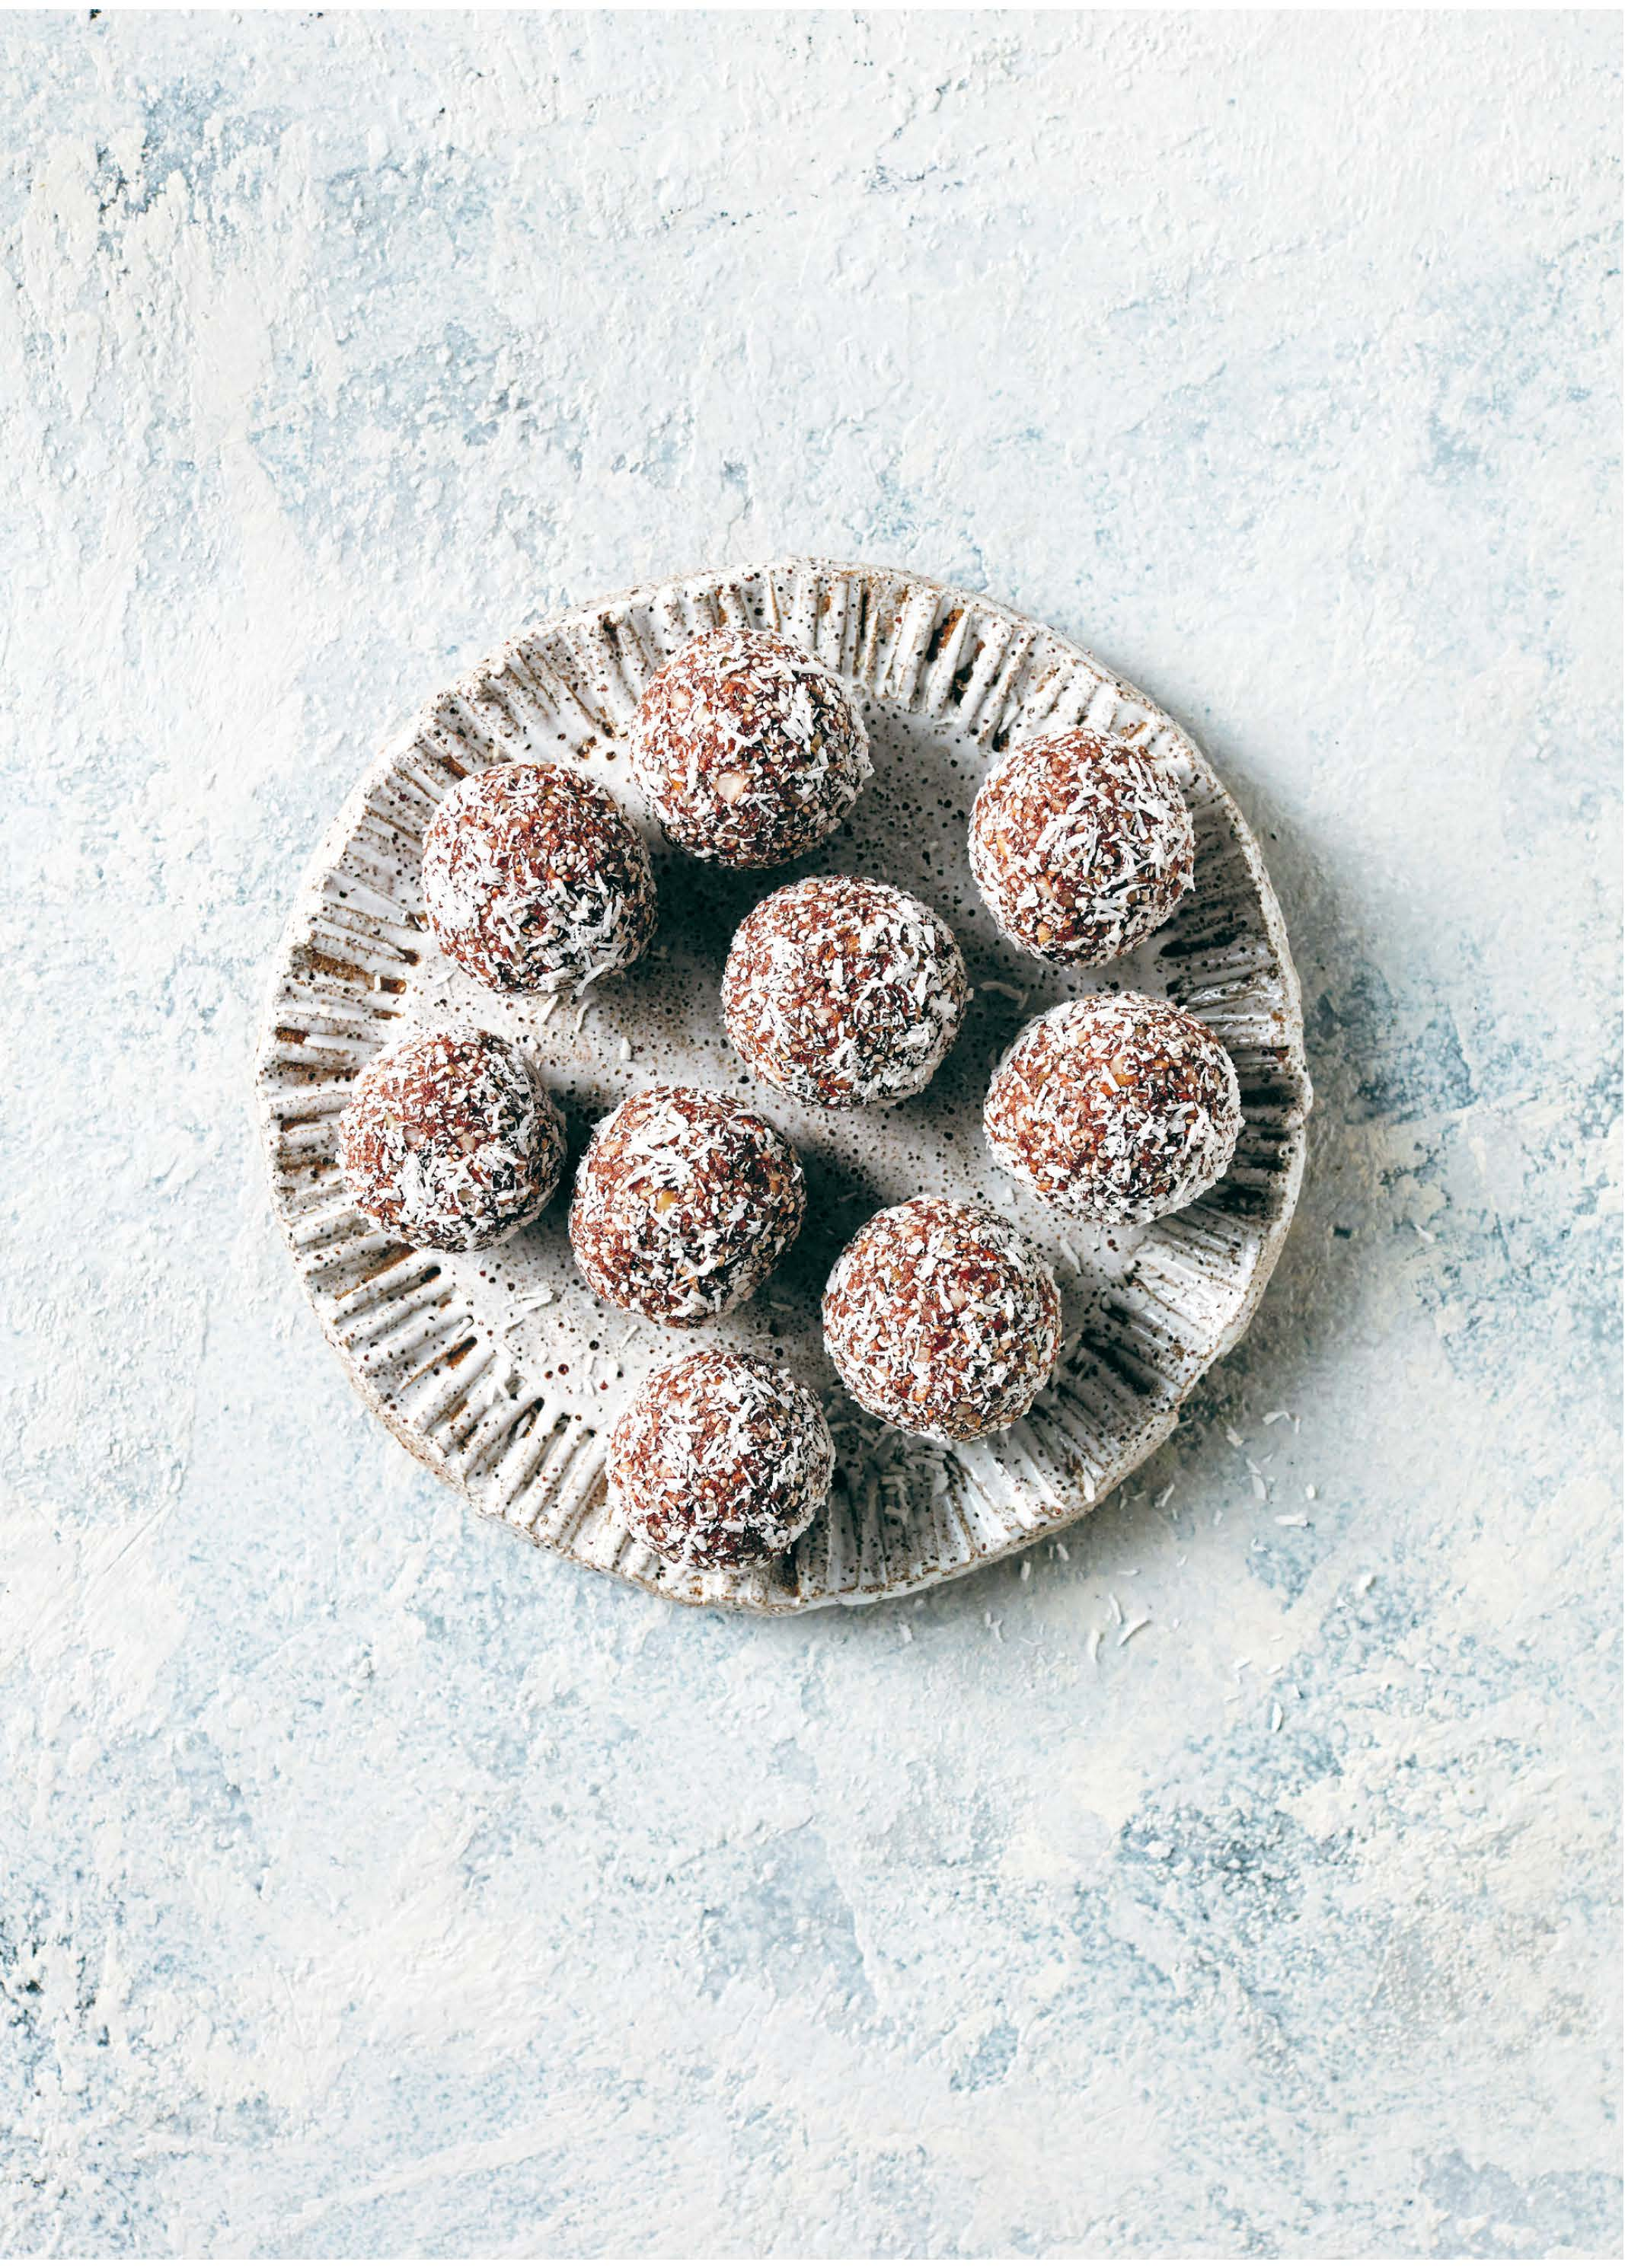 SUPERFOOD SUPER-GOOD BLISS BALLS